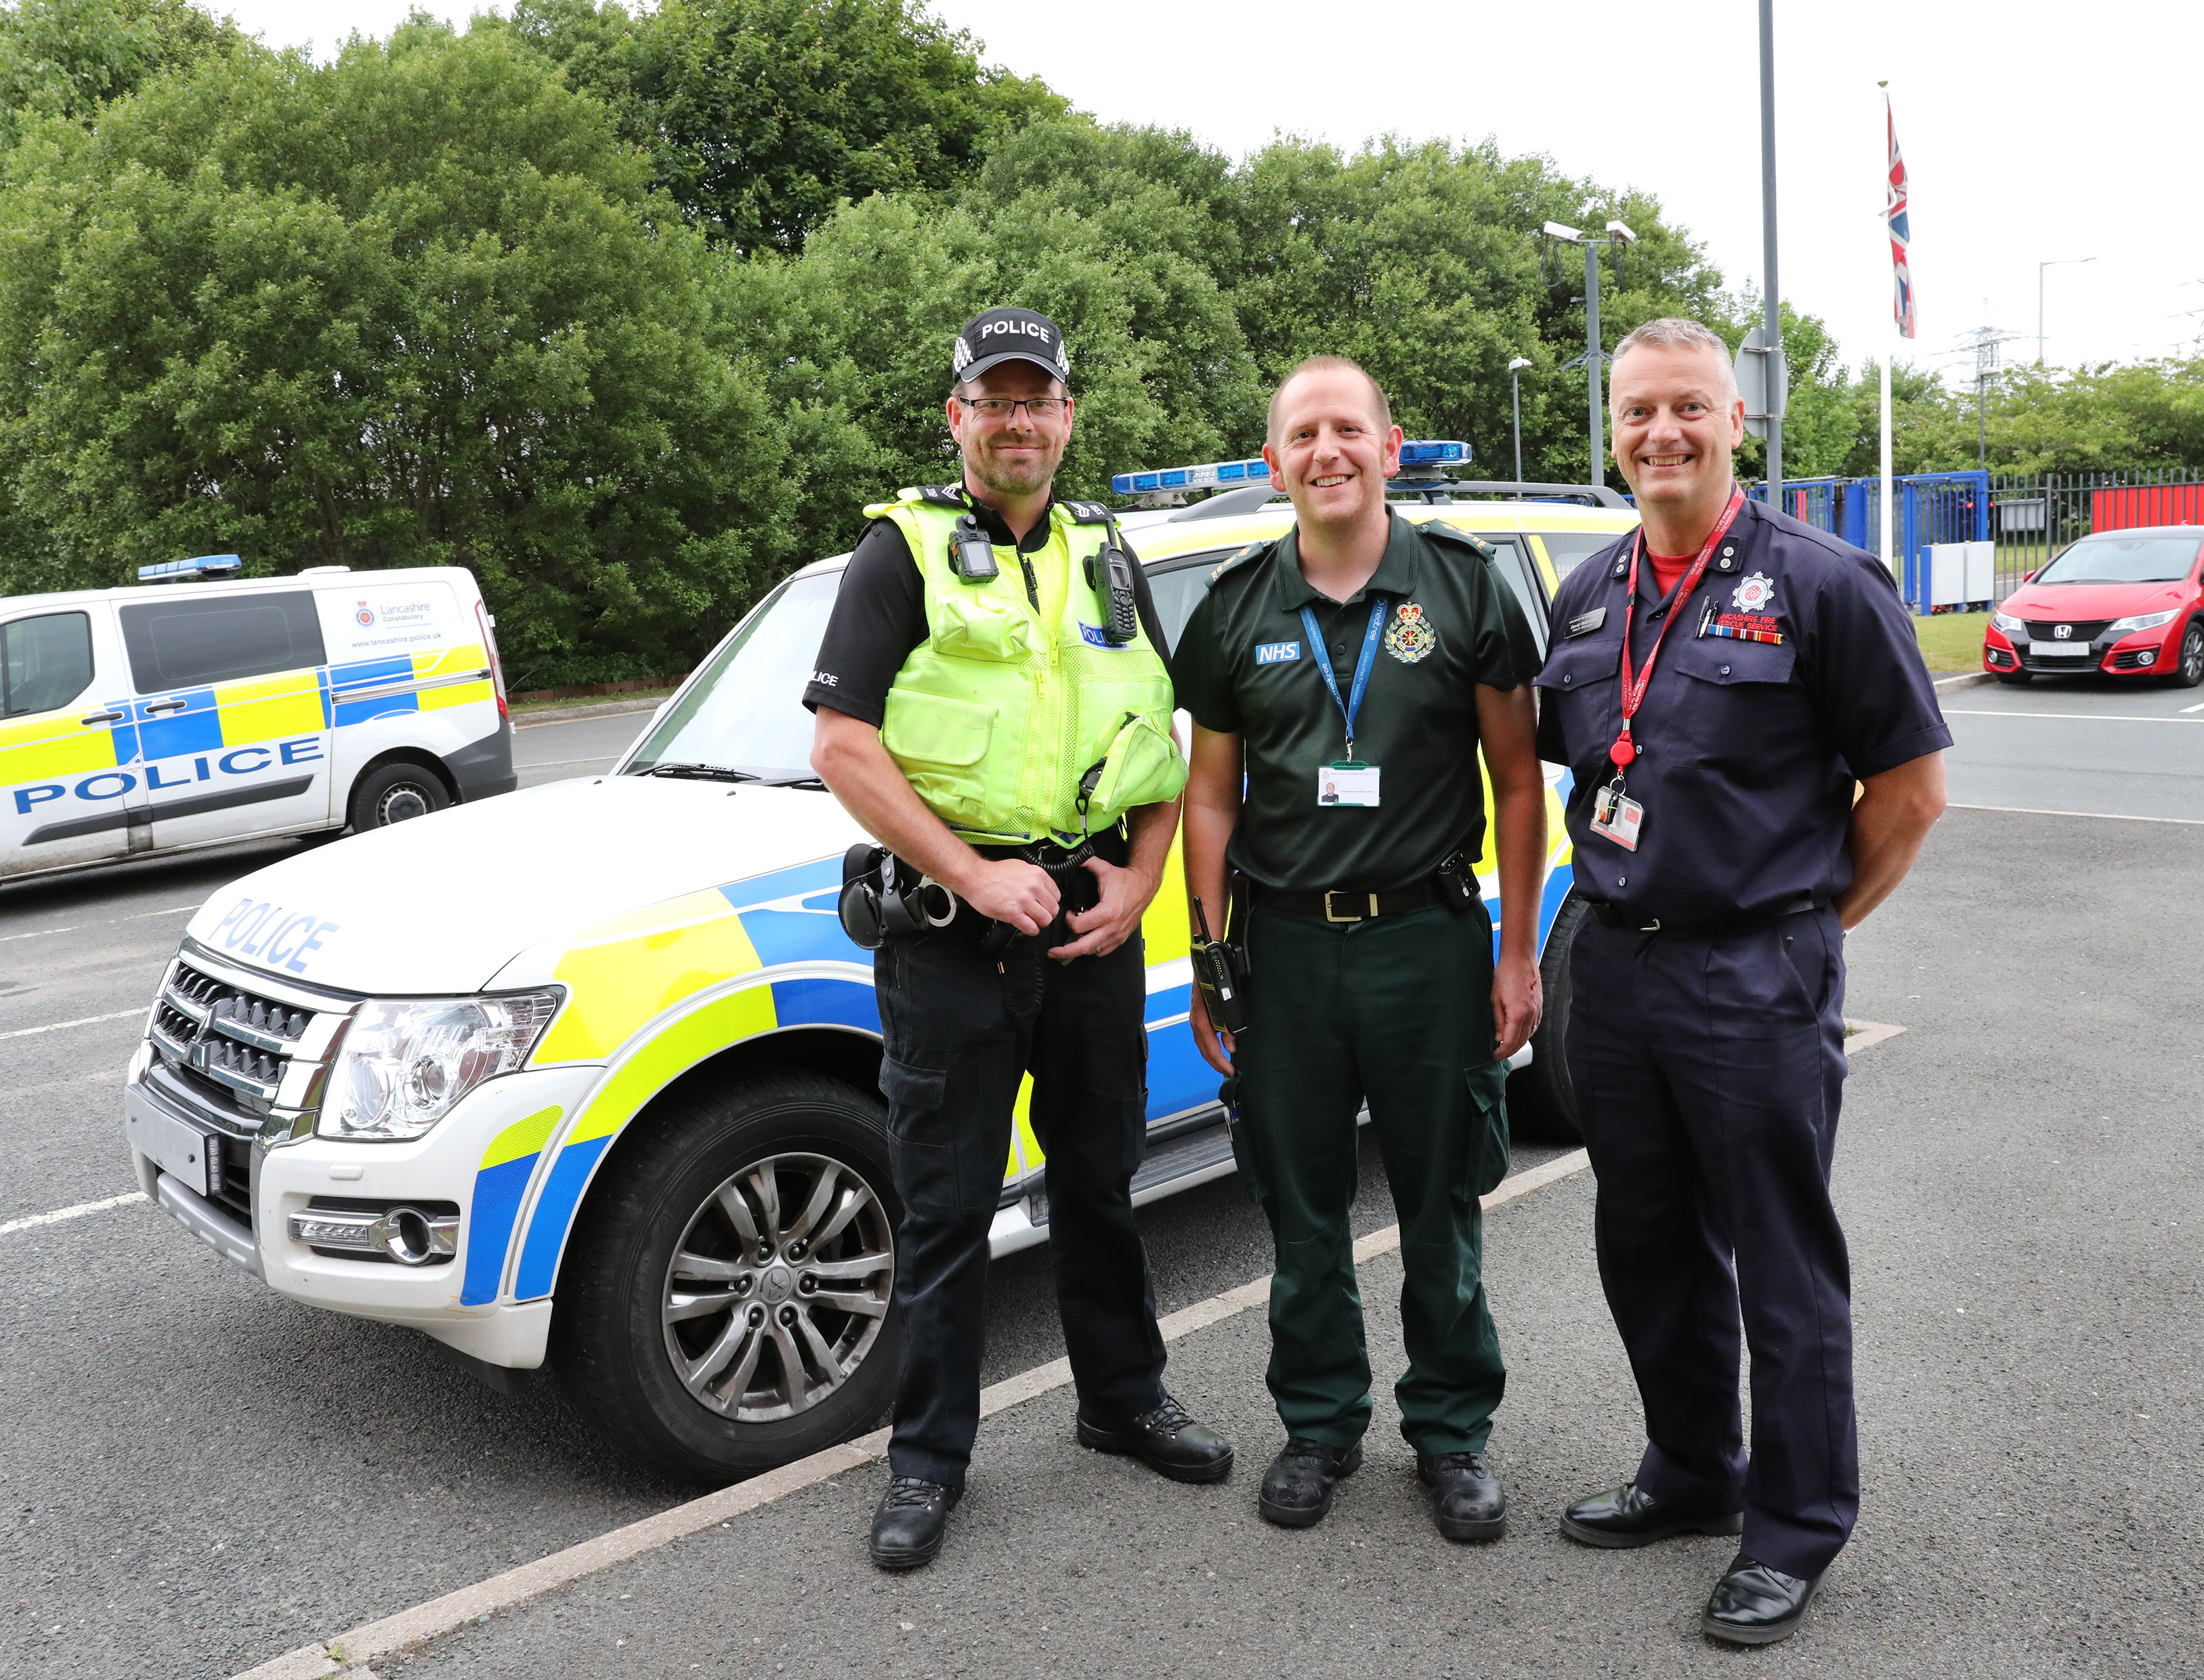 Three men stood next to a Police vehicle. One is a Police officer, one is a paramedic and one is a firefighter